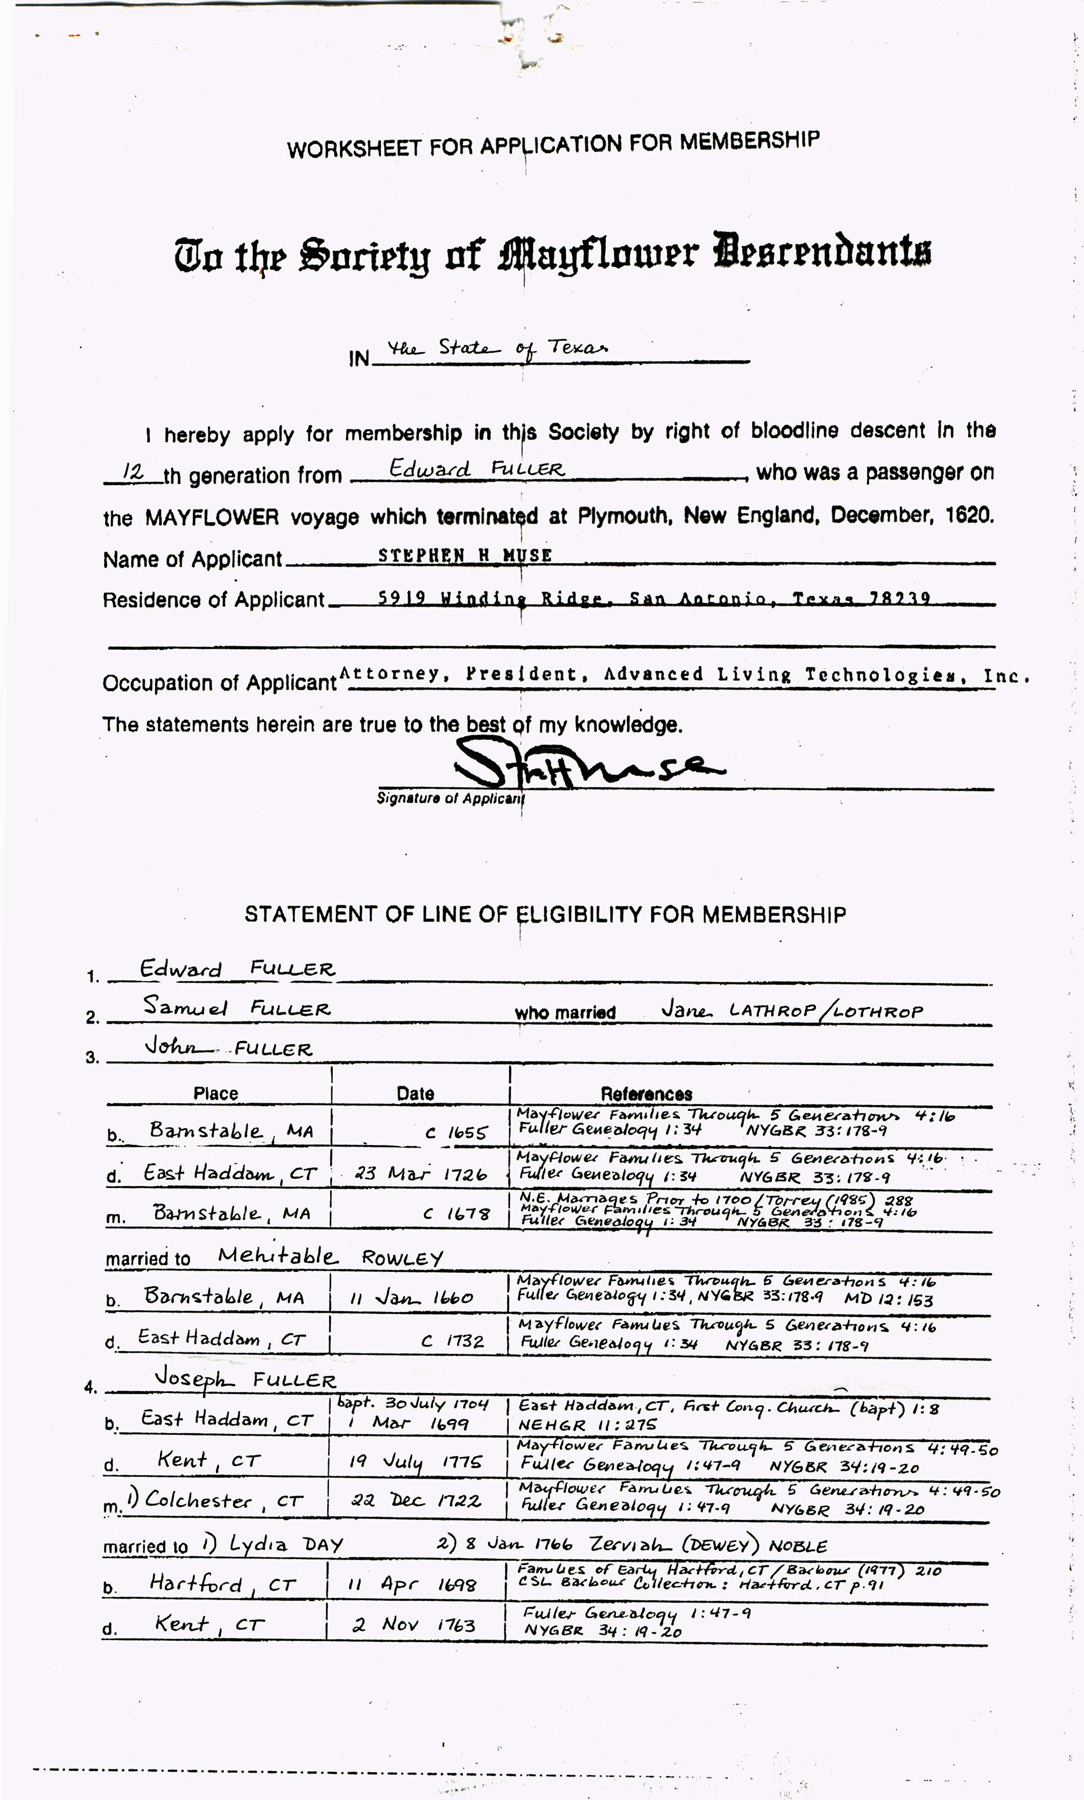 The Application For Membership To The Society Of Mayflower Descendants From  Stephen H. Muse To